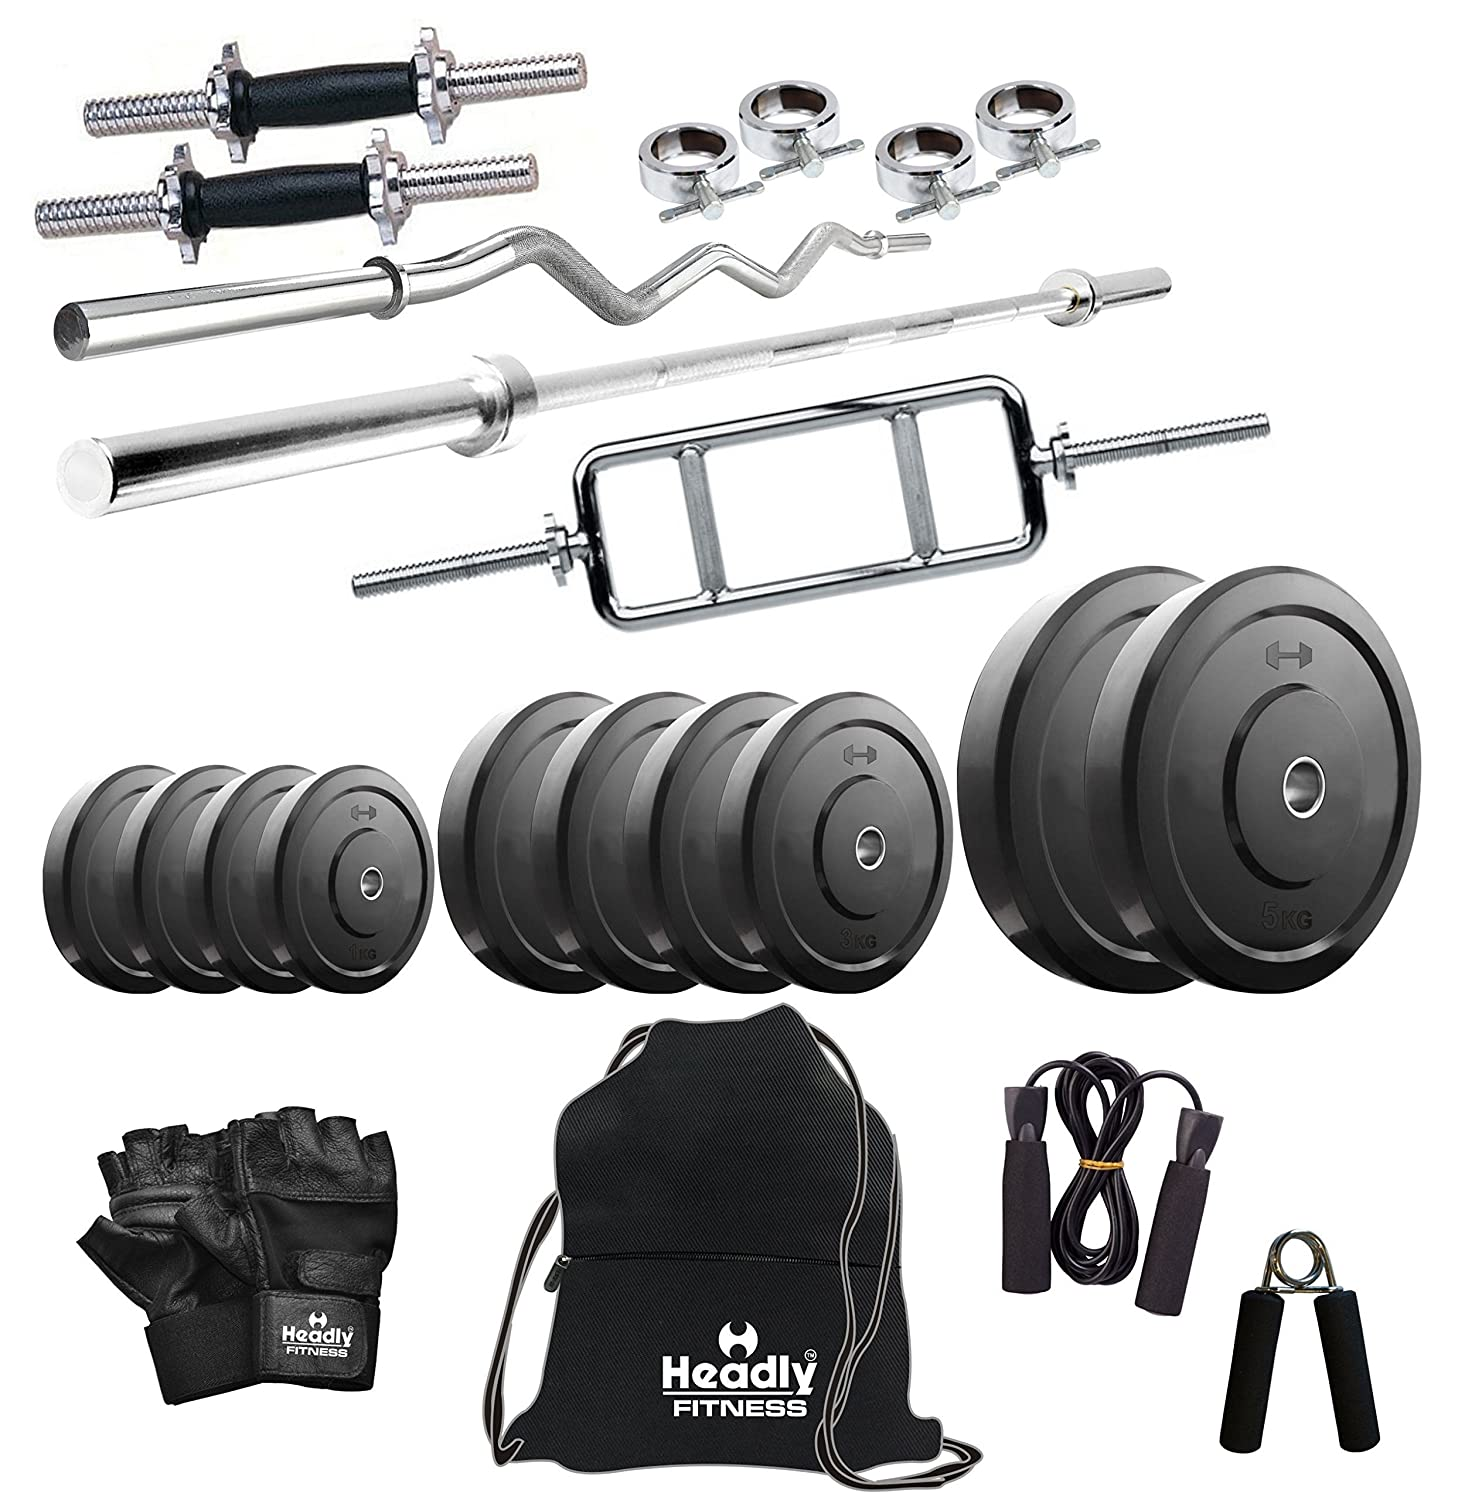 Headly 50 kg combo 1 home gym: amazon.in: sports fitness & outdoors